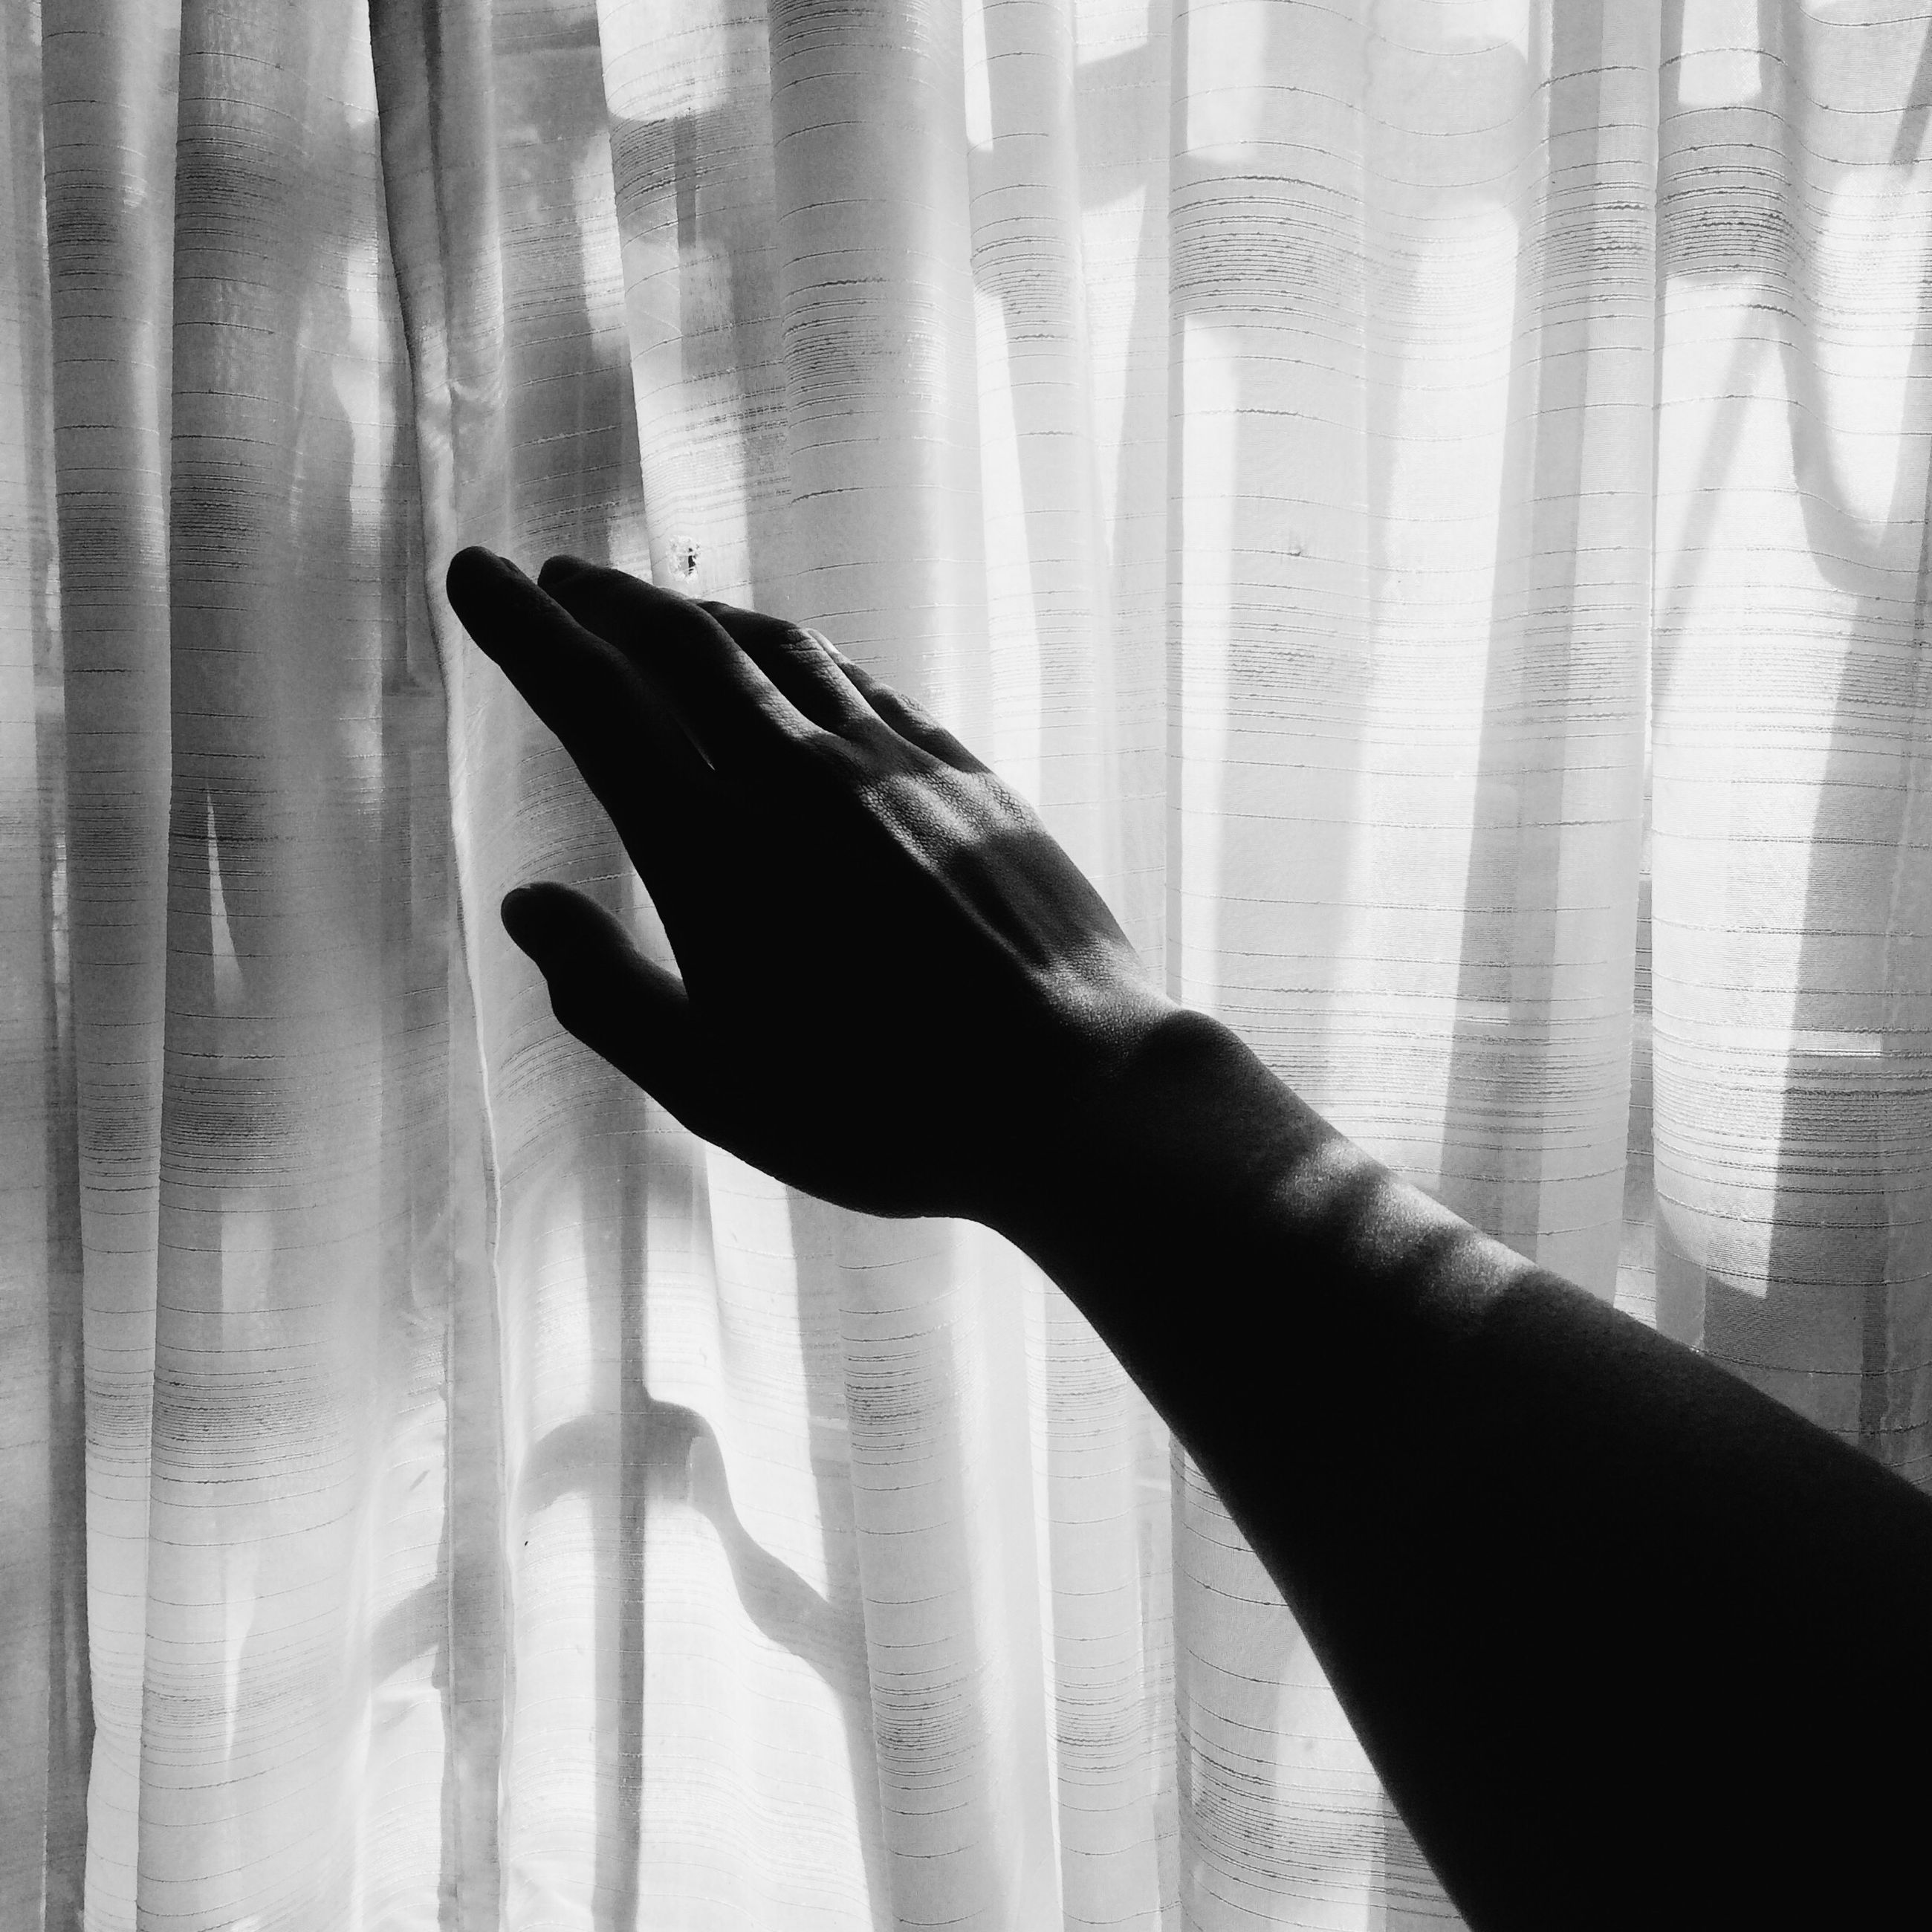 person, indoors, part of, human finger, cropped, lifestyles, unrecognizable person, curtain, close-up, low section, personal perspective, home interior, shadow, leisure activity, holding